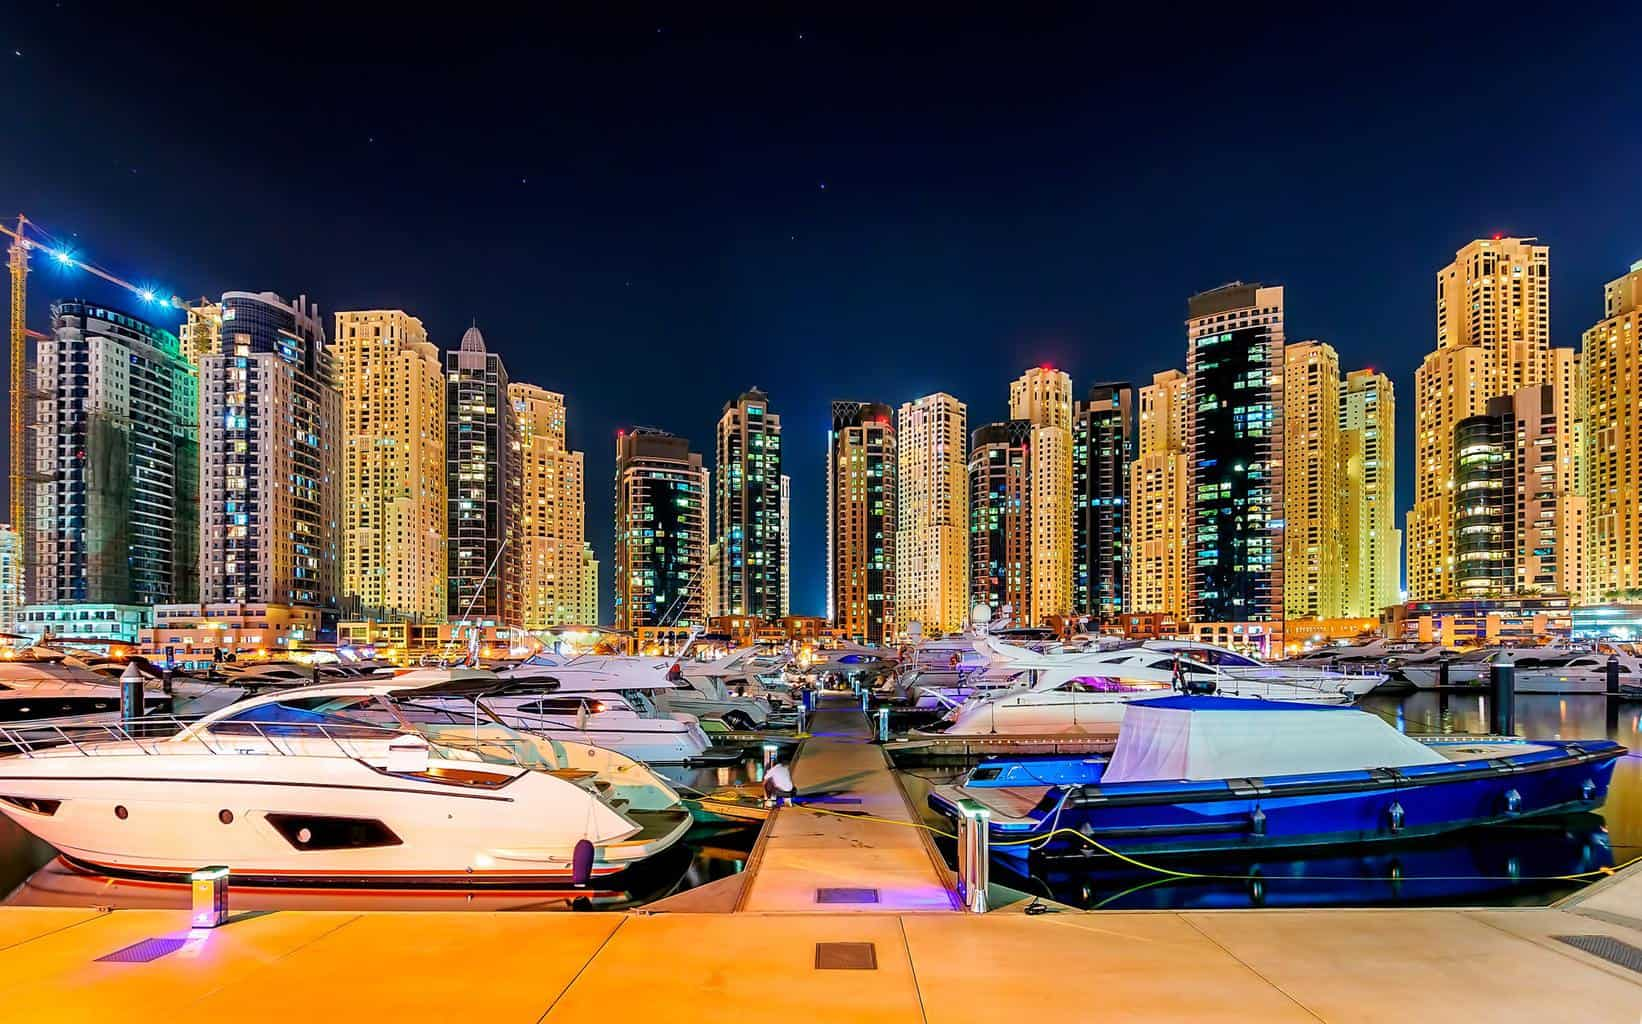 Colorful dubai marina skyline, Dubai, United Arab Emirates